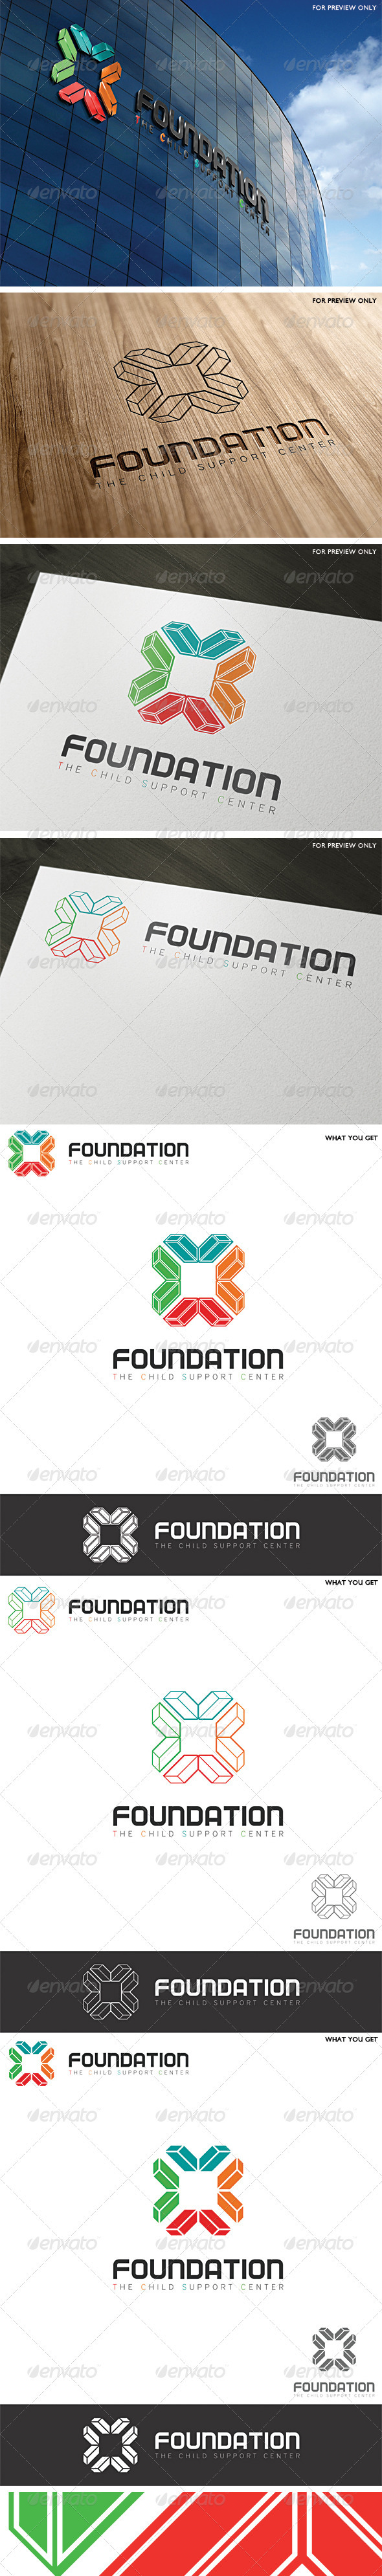 Foundation Support Center Logo Template - Vector Abstract